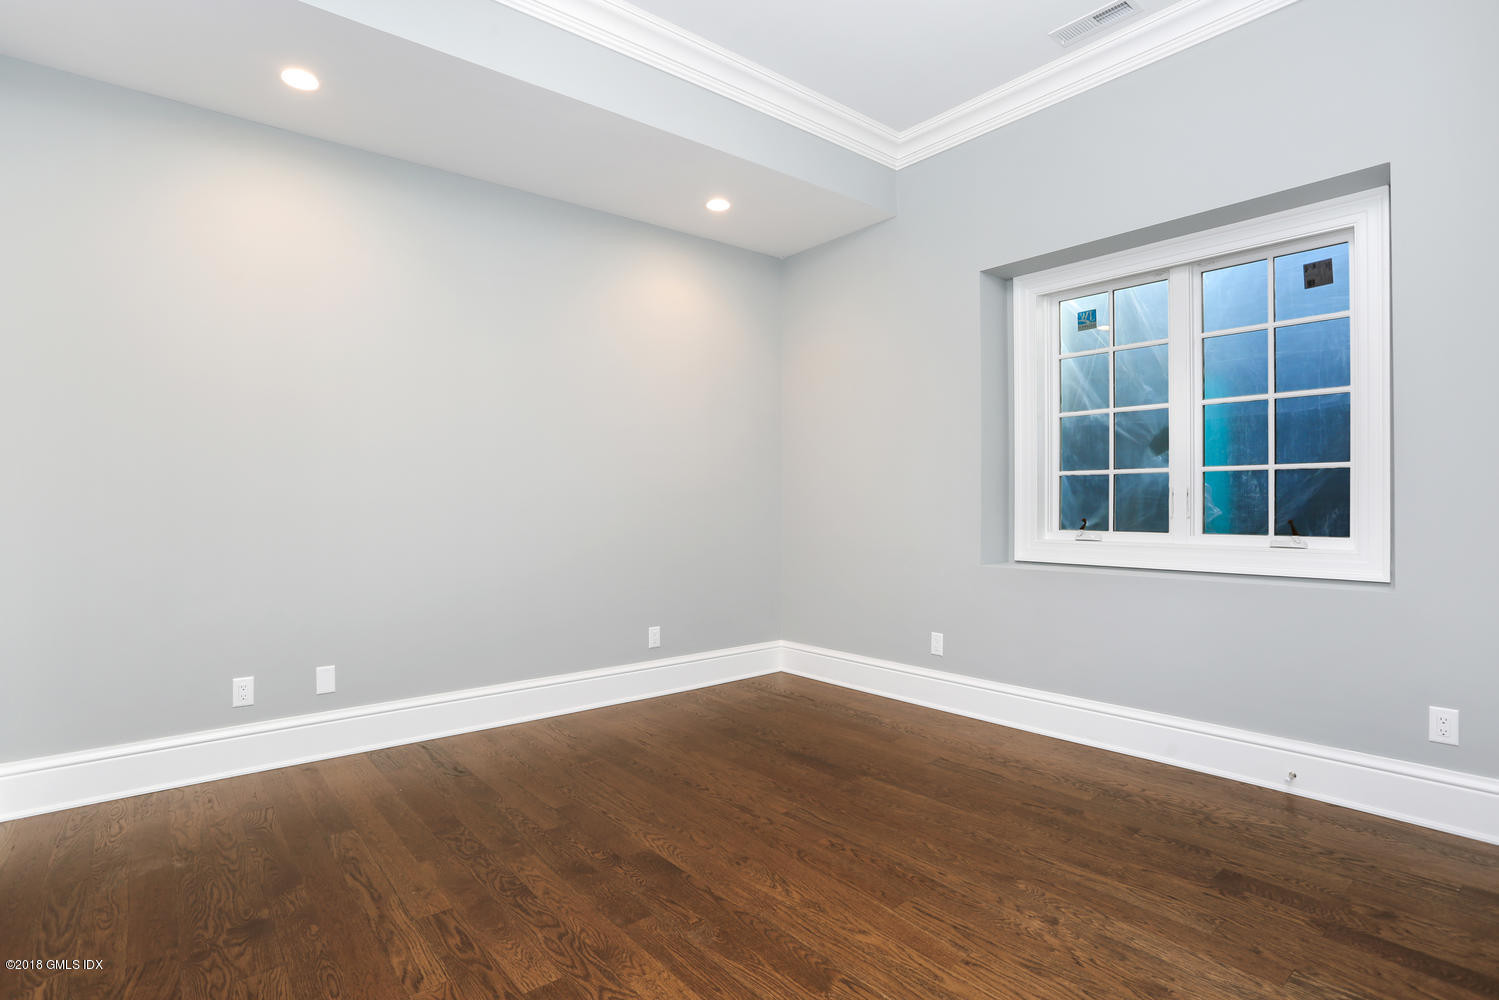 hardwood flooring greenwich ct of 3 orchard place b greenwich ct 06830 mls 103930 david ogilvy within 3 orchard place b greenwich ct 06830